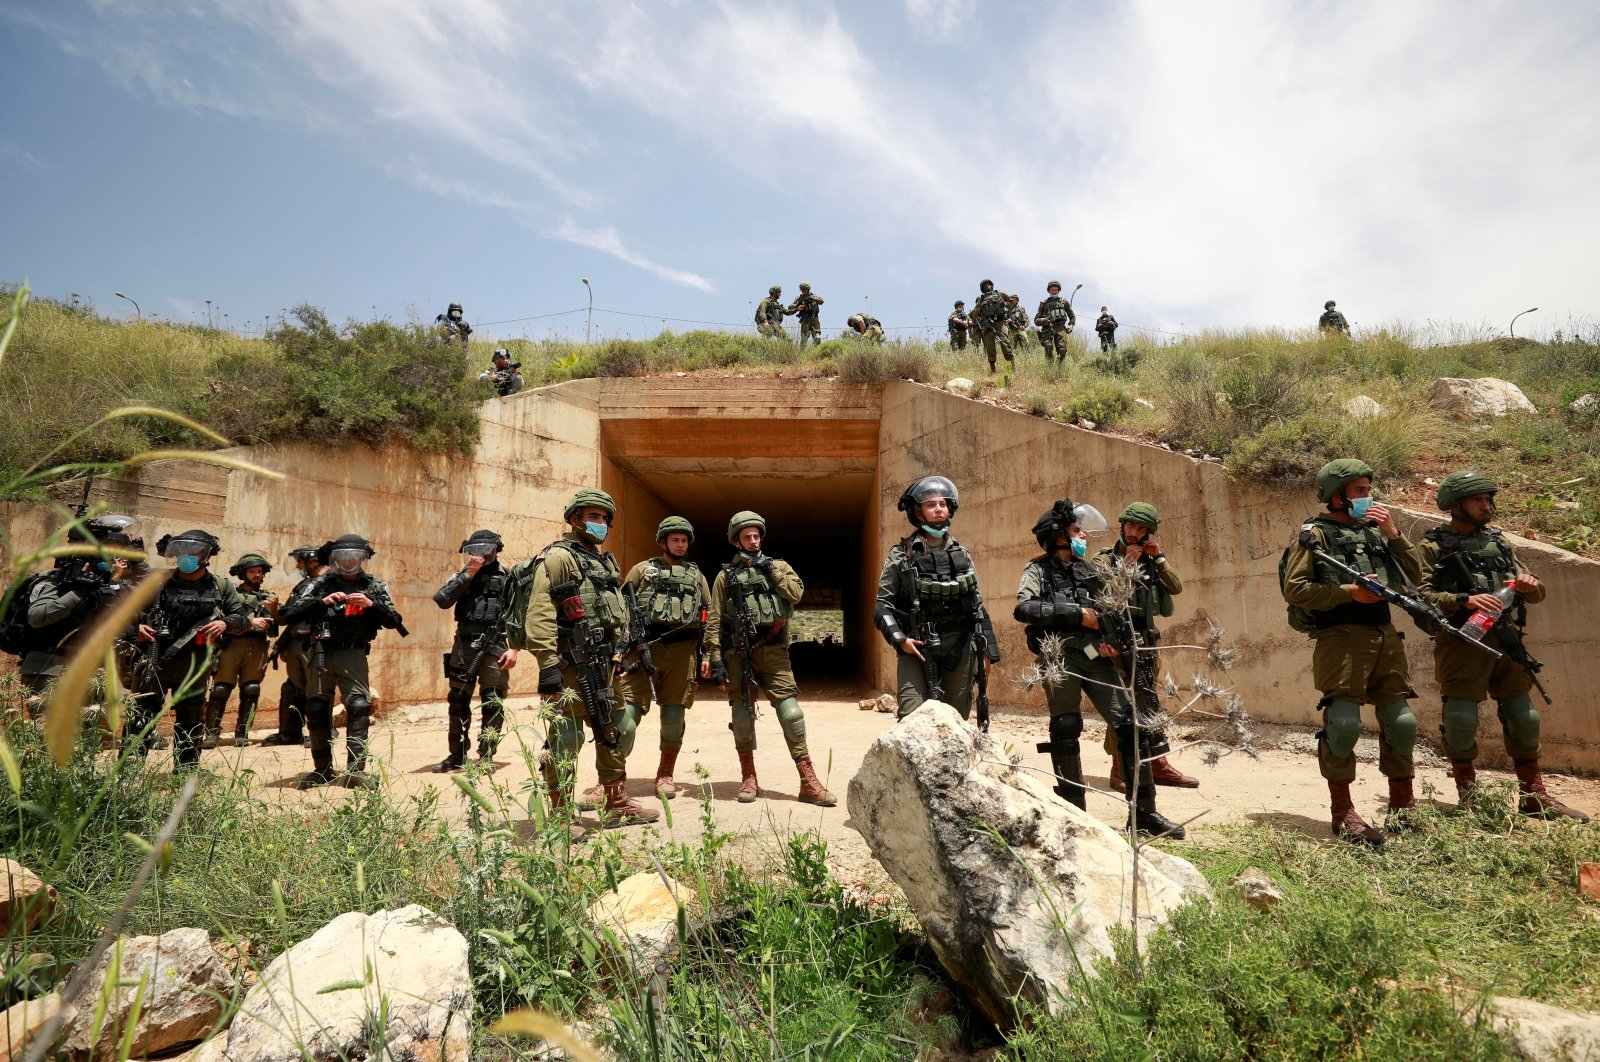 Israeli troops stand guard as Palestinians marking the 72nd anniversary of Nakba protest against Israel's plan to annex parts of the occupied West Bank, in the village of Sawiya near Nablus, May 15, 2020. (Reuters Photo)